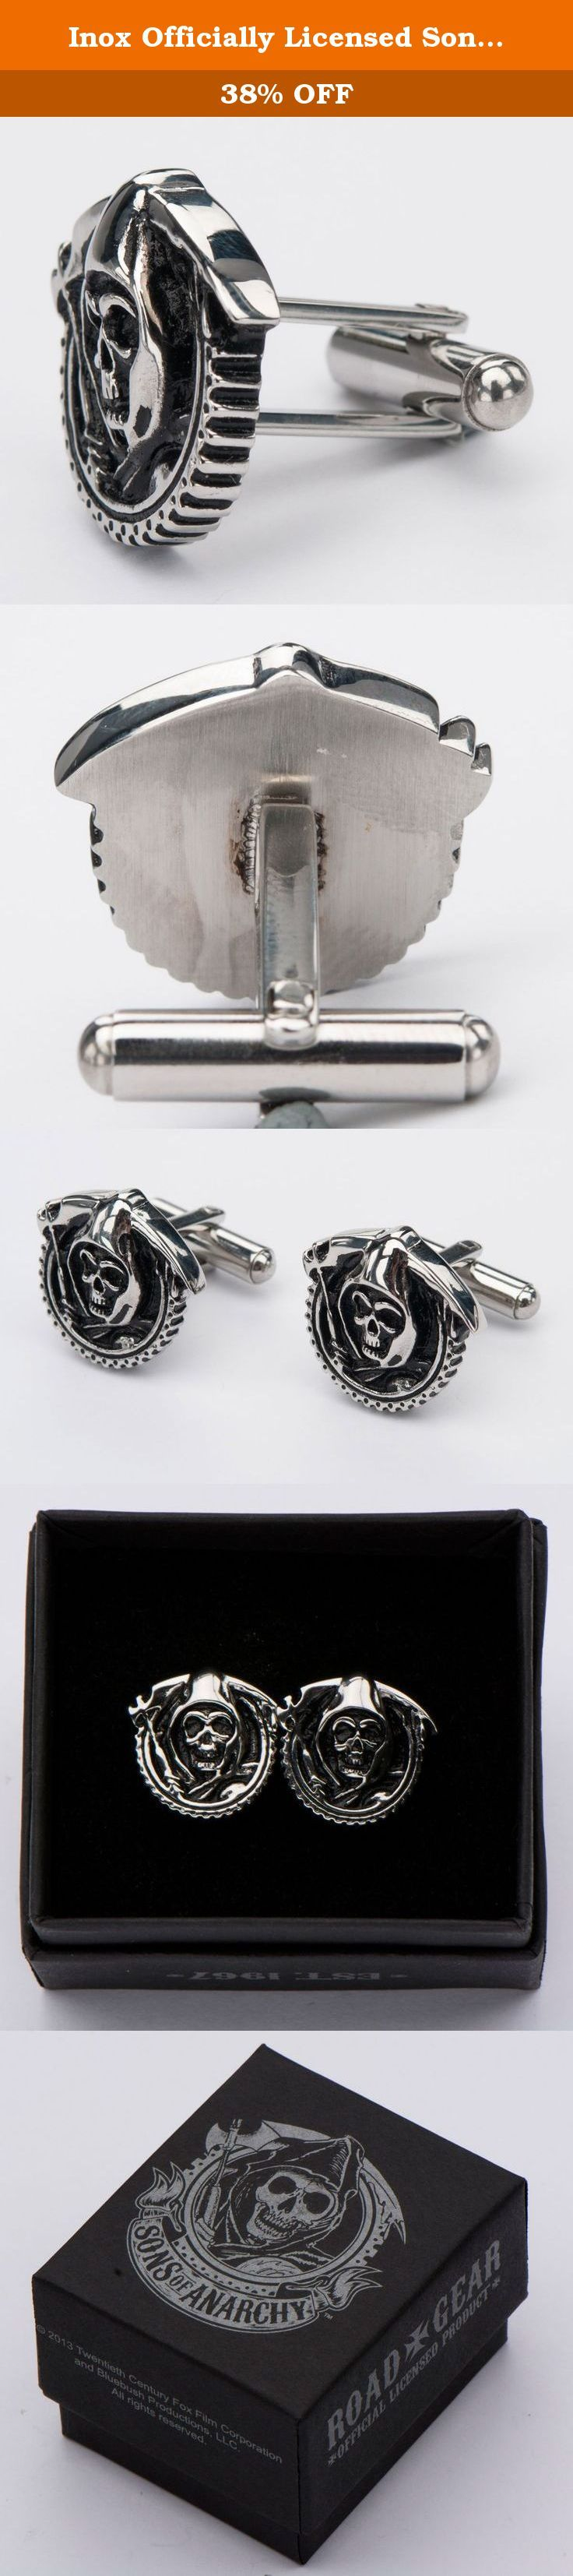 Inox Officially Licensed Sons of Anarchy Stainless Steel Grim Reaper Cufflinks. N0-Risk Guarantee! If for any reason you are not satisfied with your purchase, simply return them for a full Money Back Guarantee!.